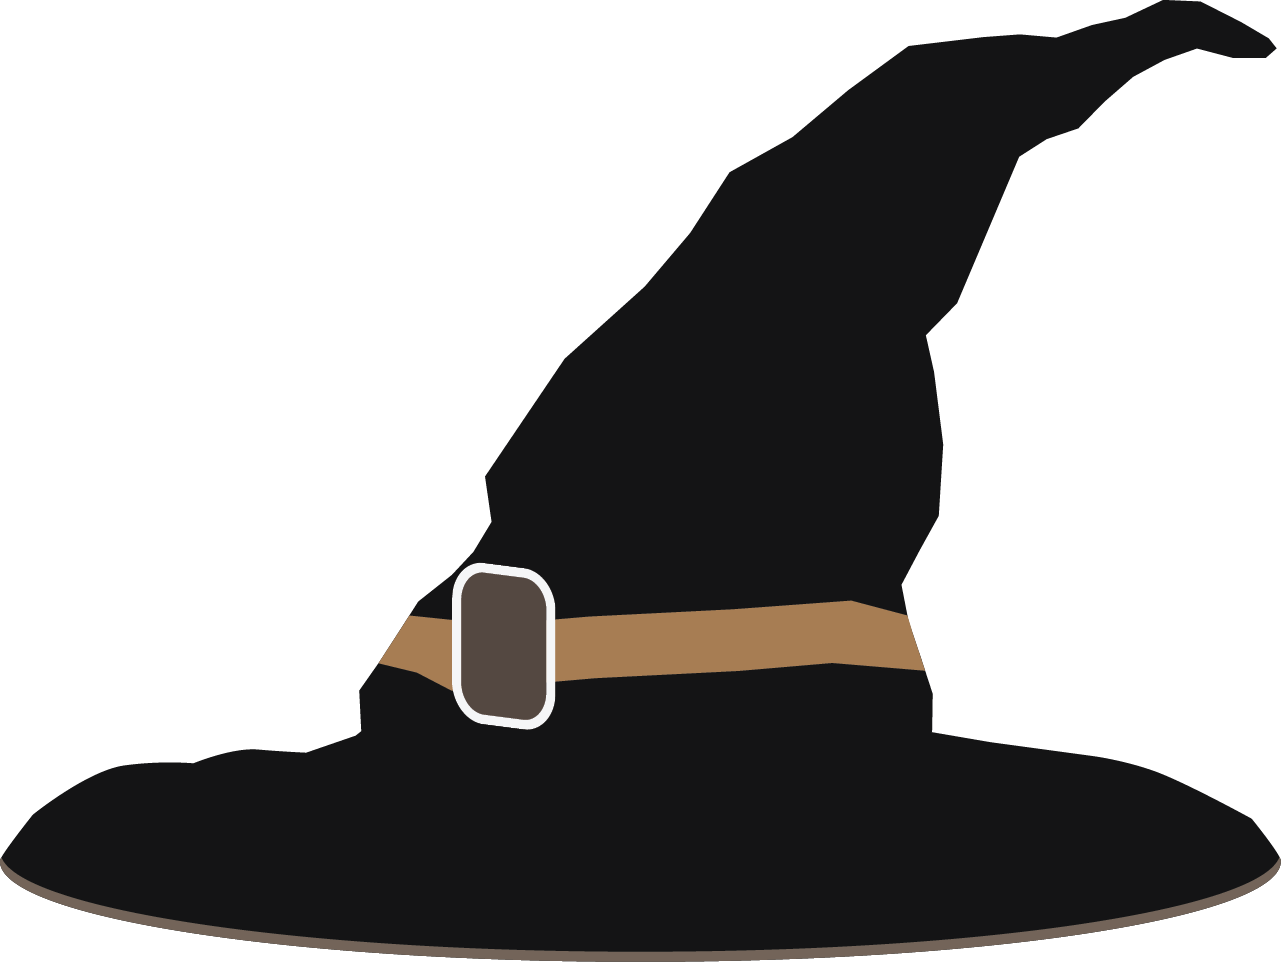 Witch clipart #15